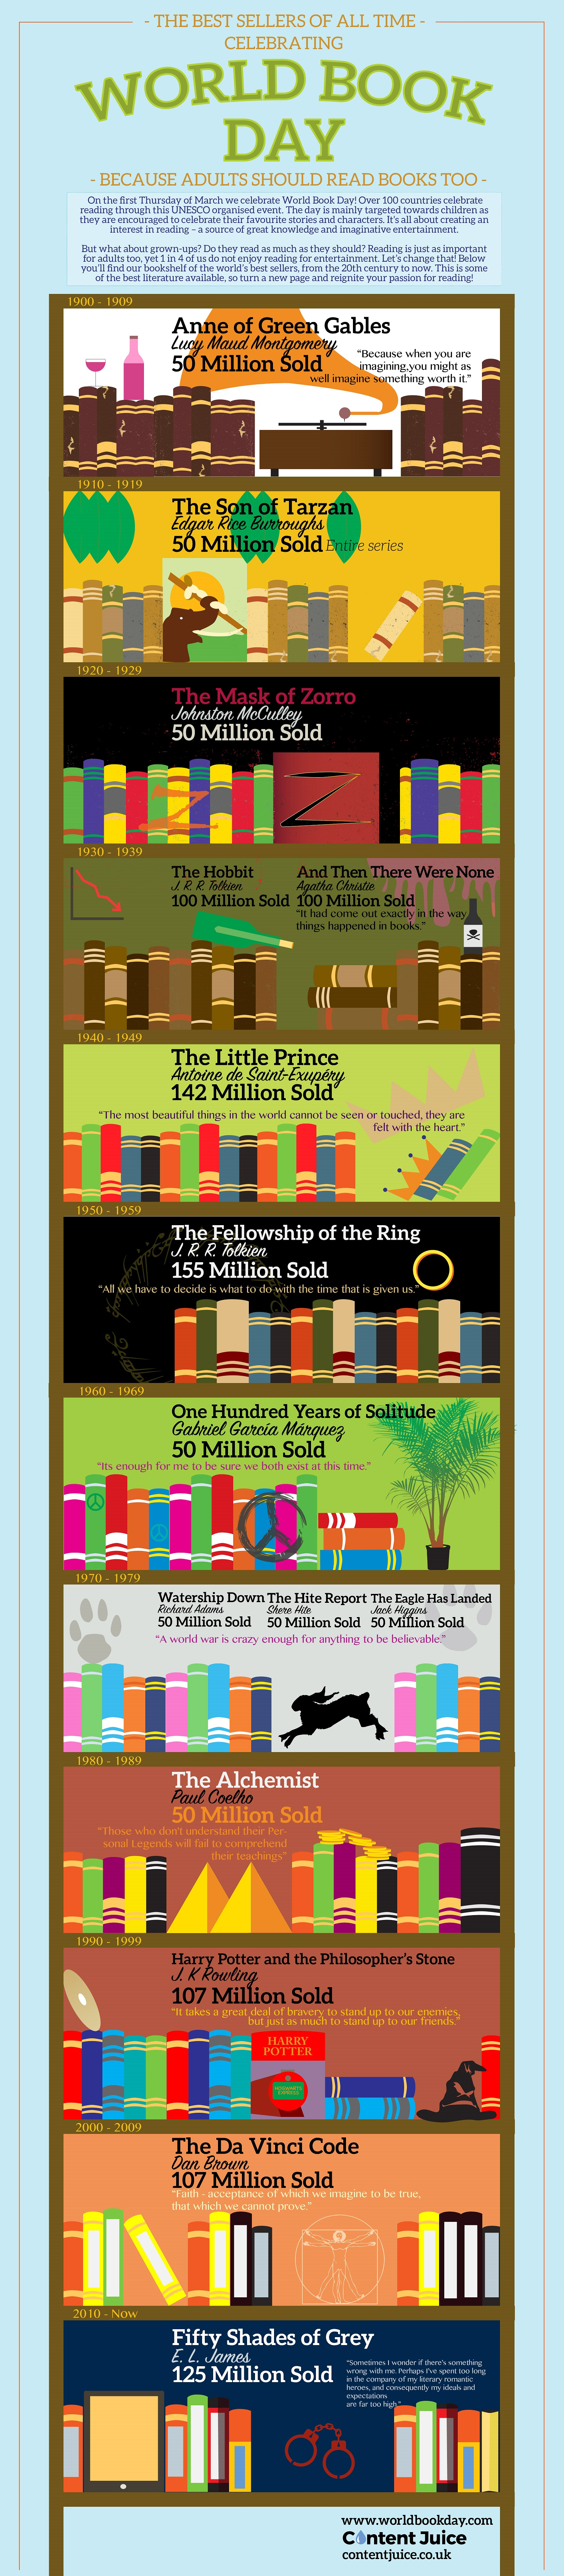 world-book-day-2017-infographic